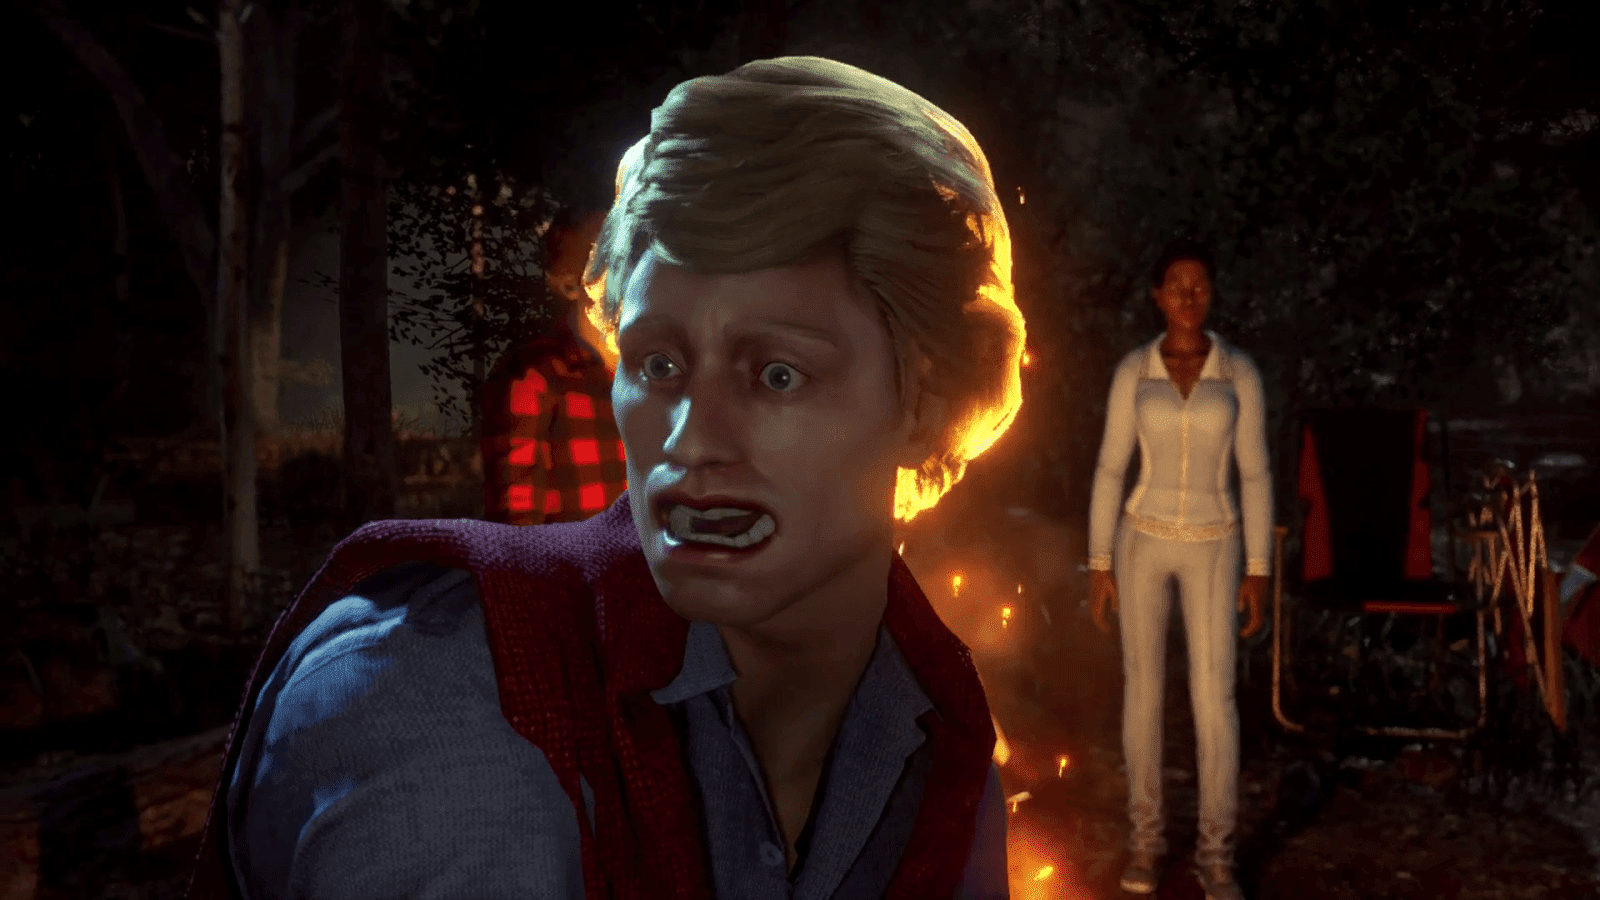 Friday The 13th The Game Wallpapers In Ultra Hd 4k 3 Game